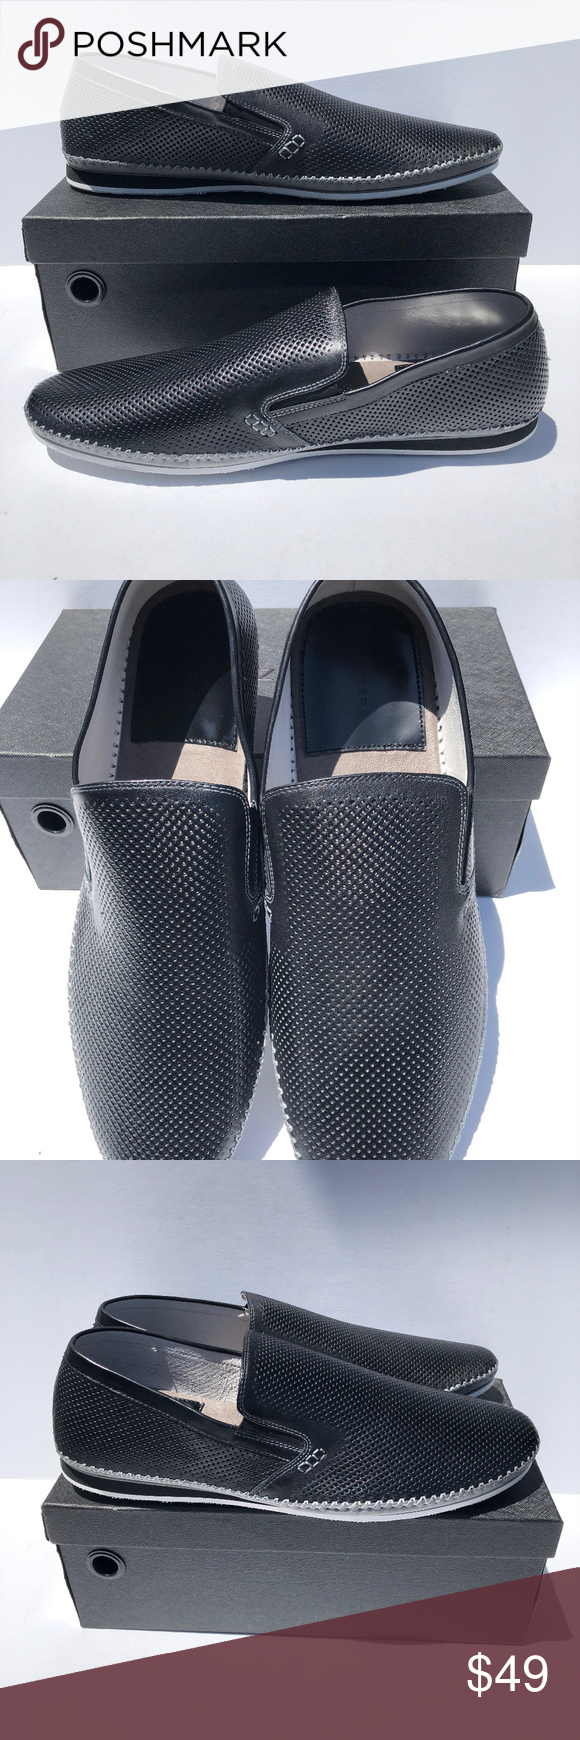 1a164c68017 MEN S Zanzara Merz Leather Slip-On Shoes Black New Brand New In Box MEN S  Zanzara